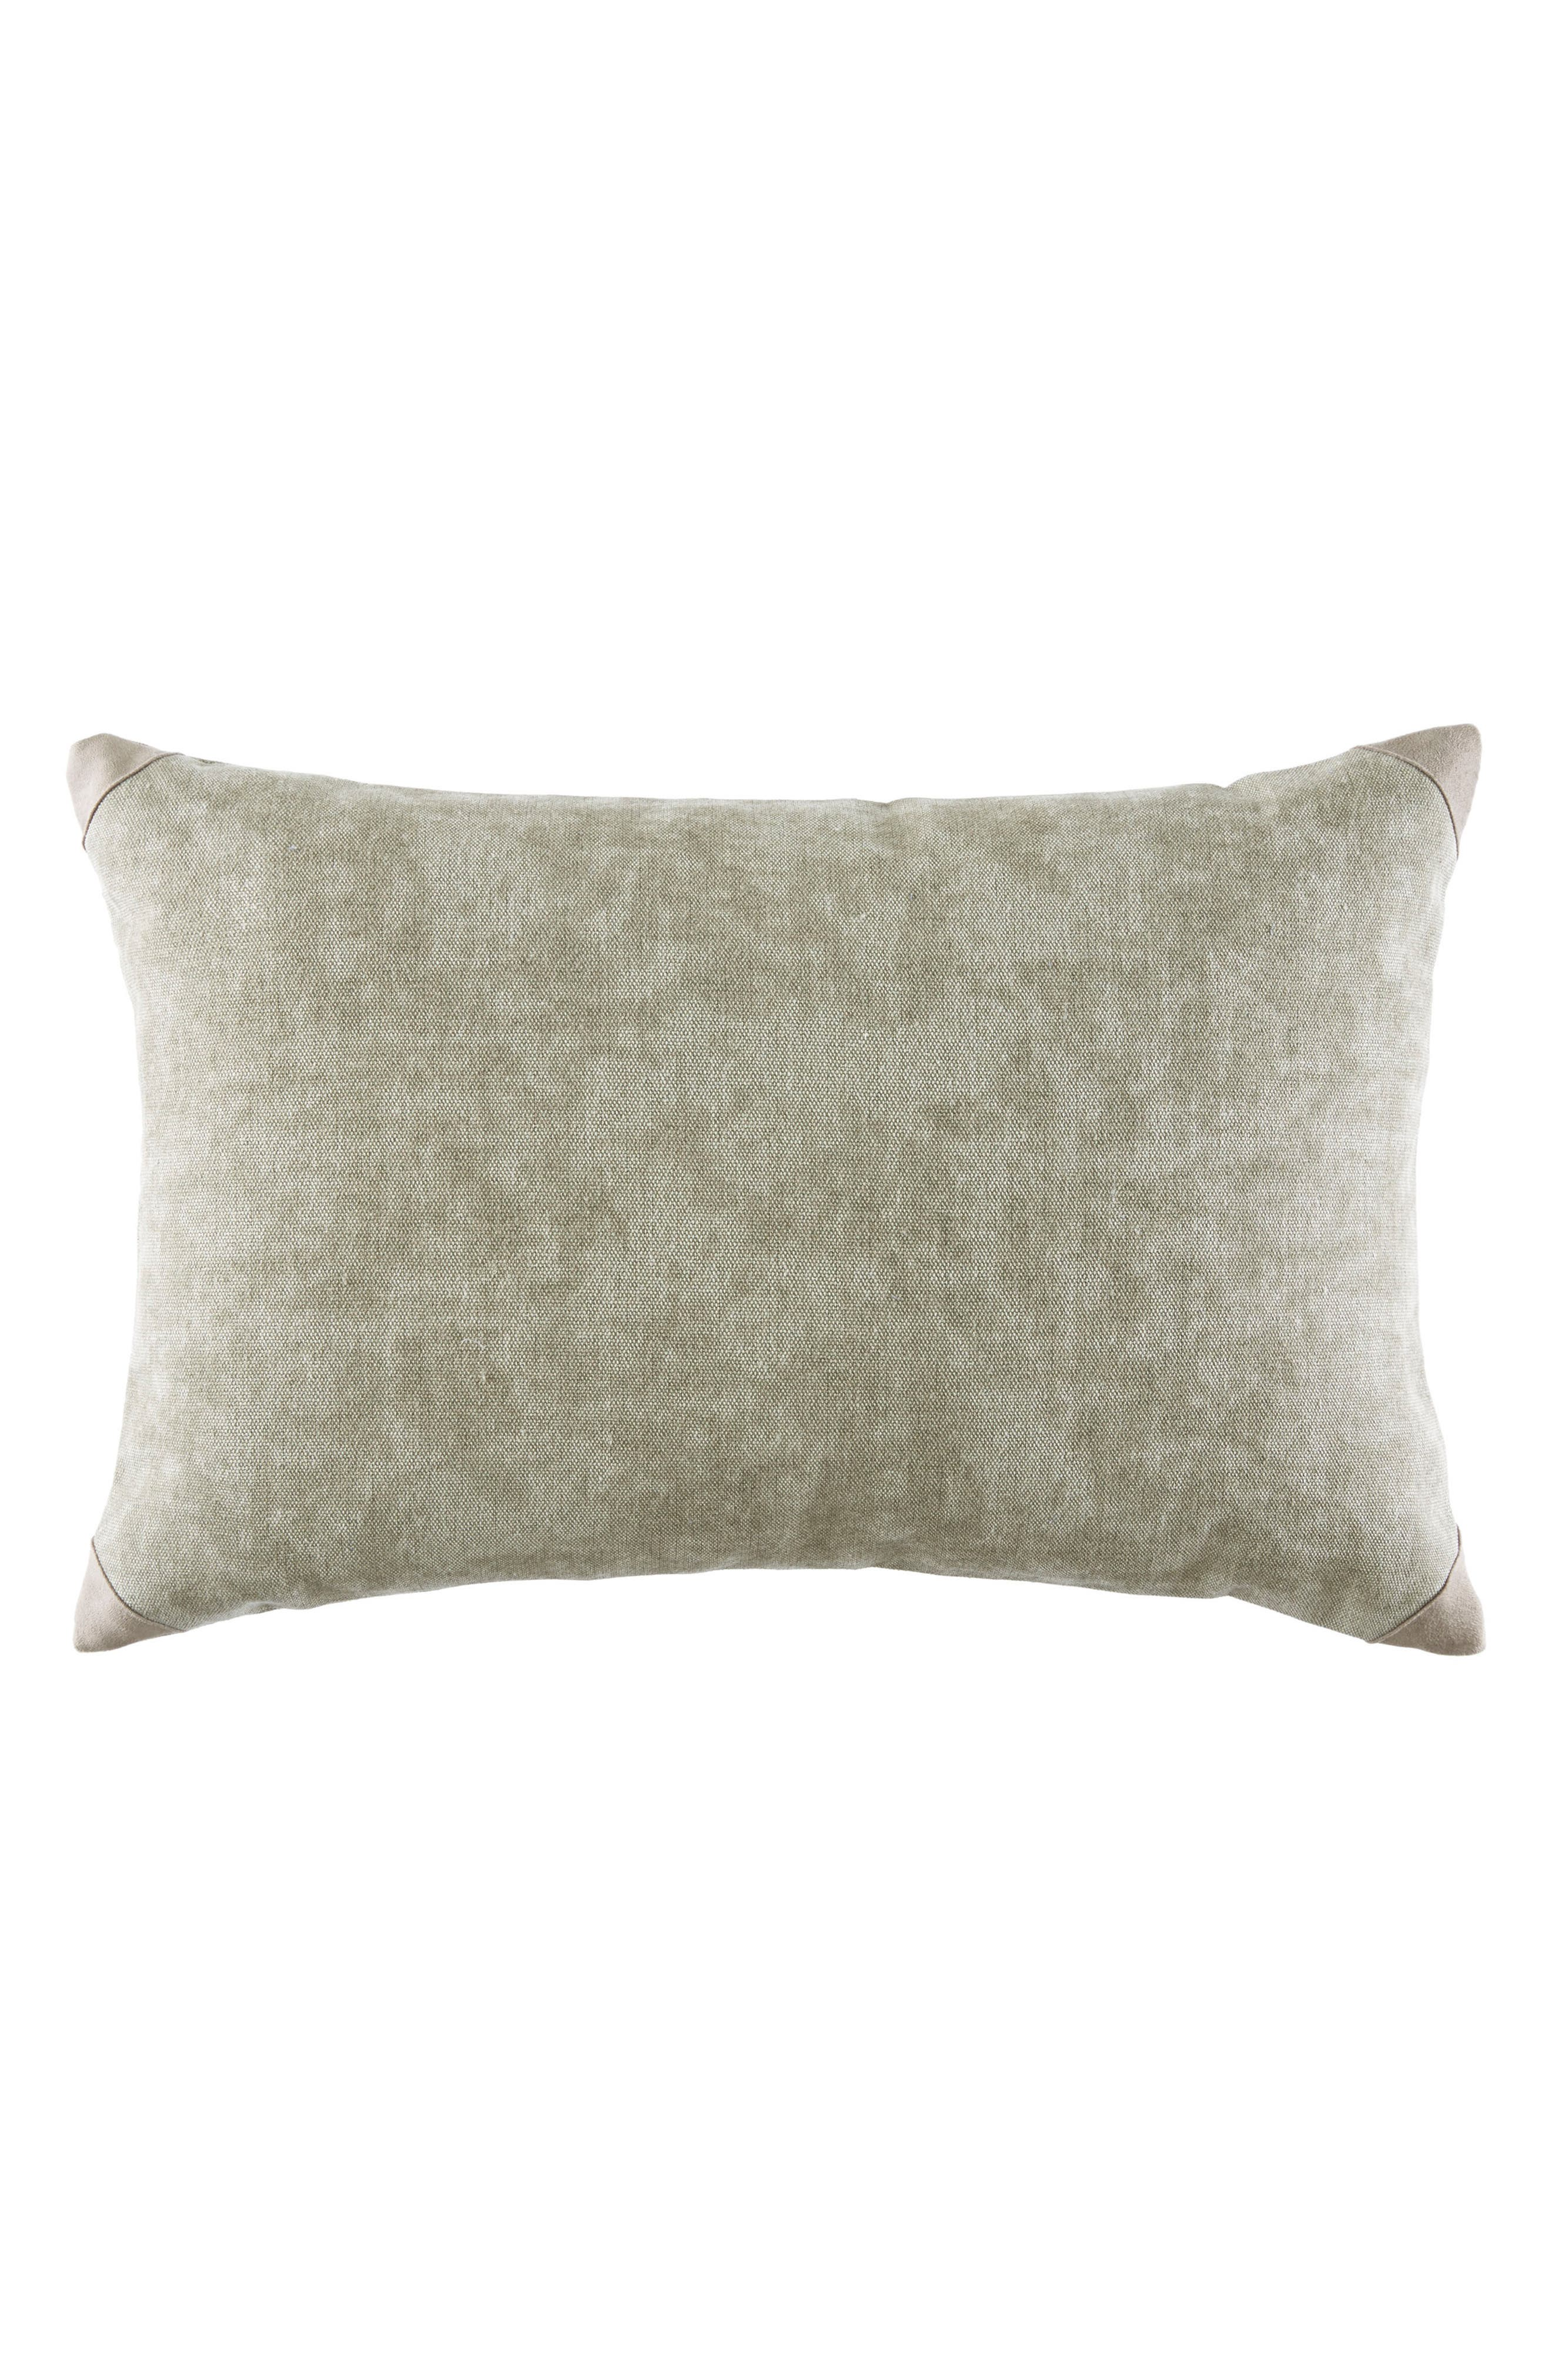 Elbow Patch Accent Pillow,                             Main thumbnail 1, color,